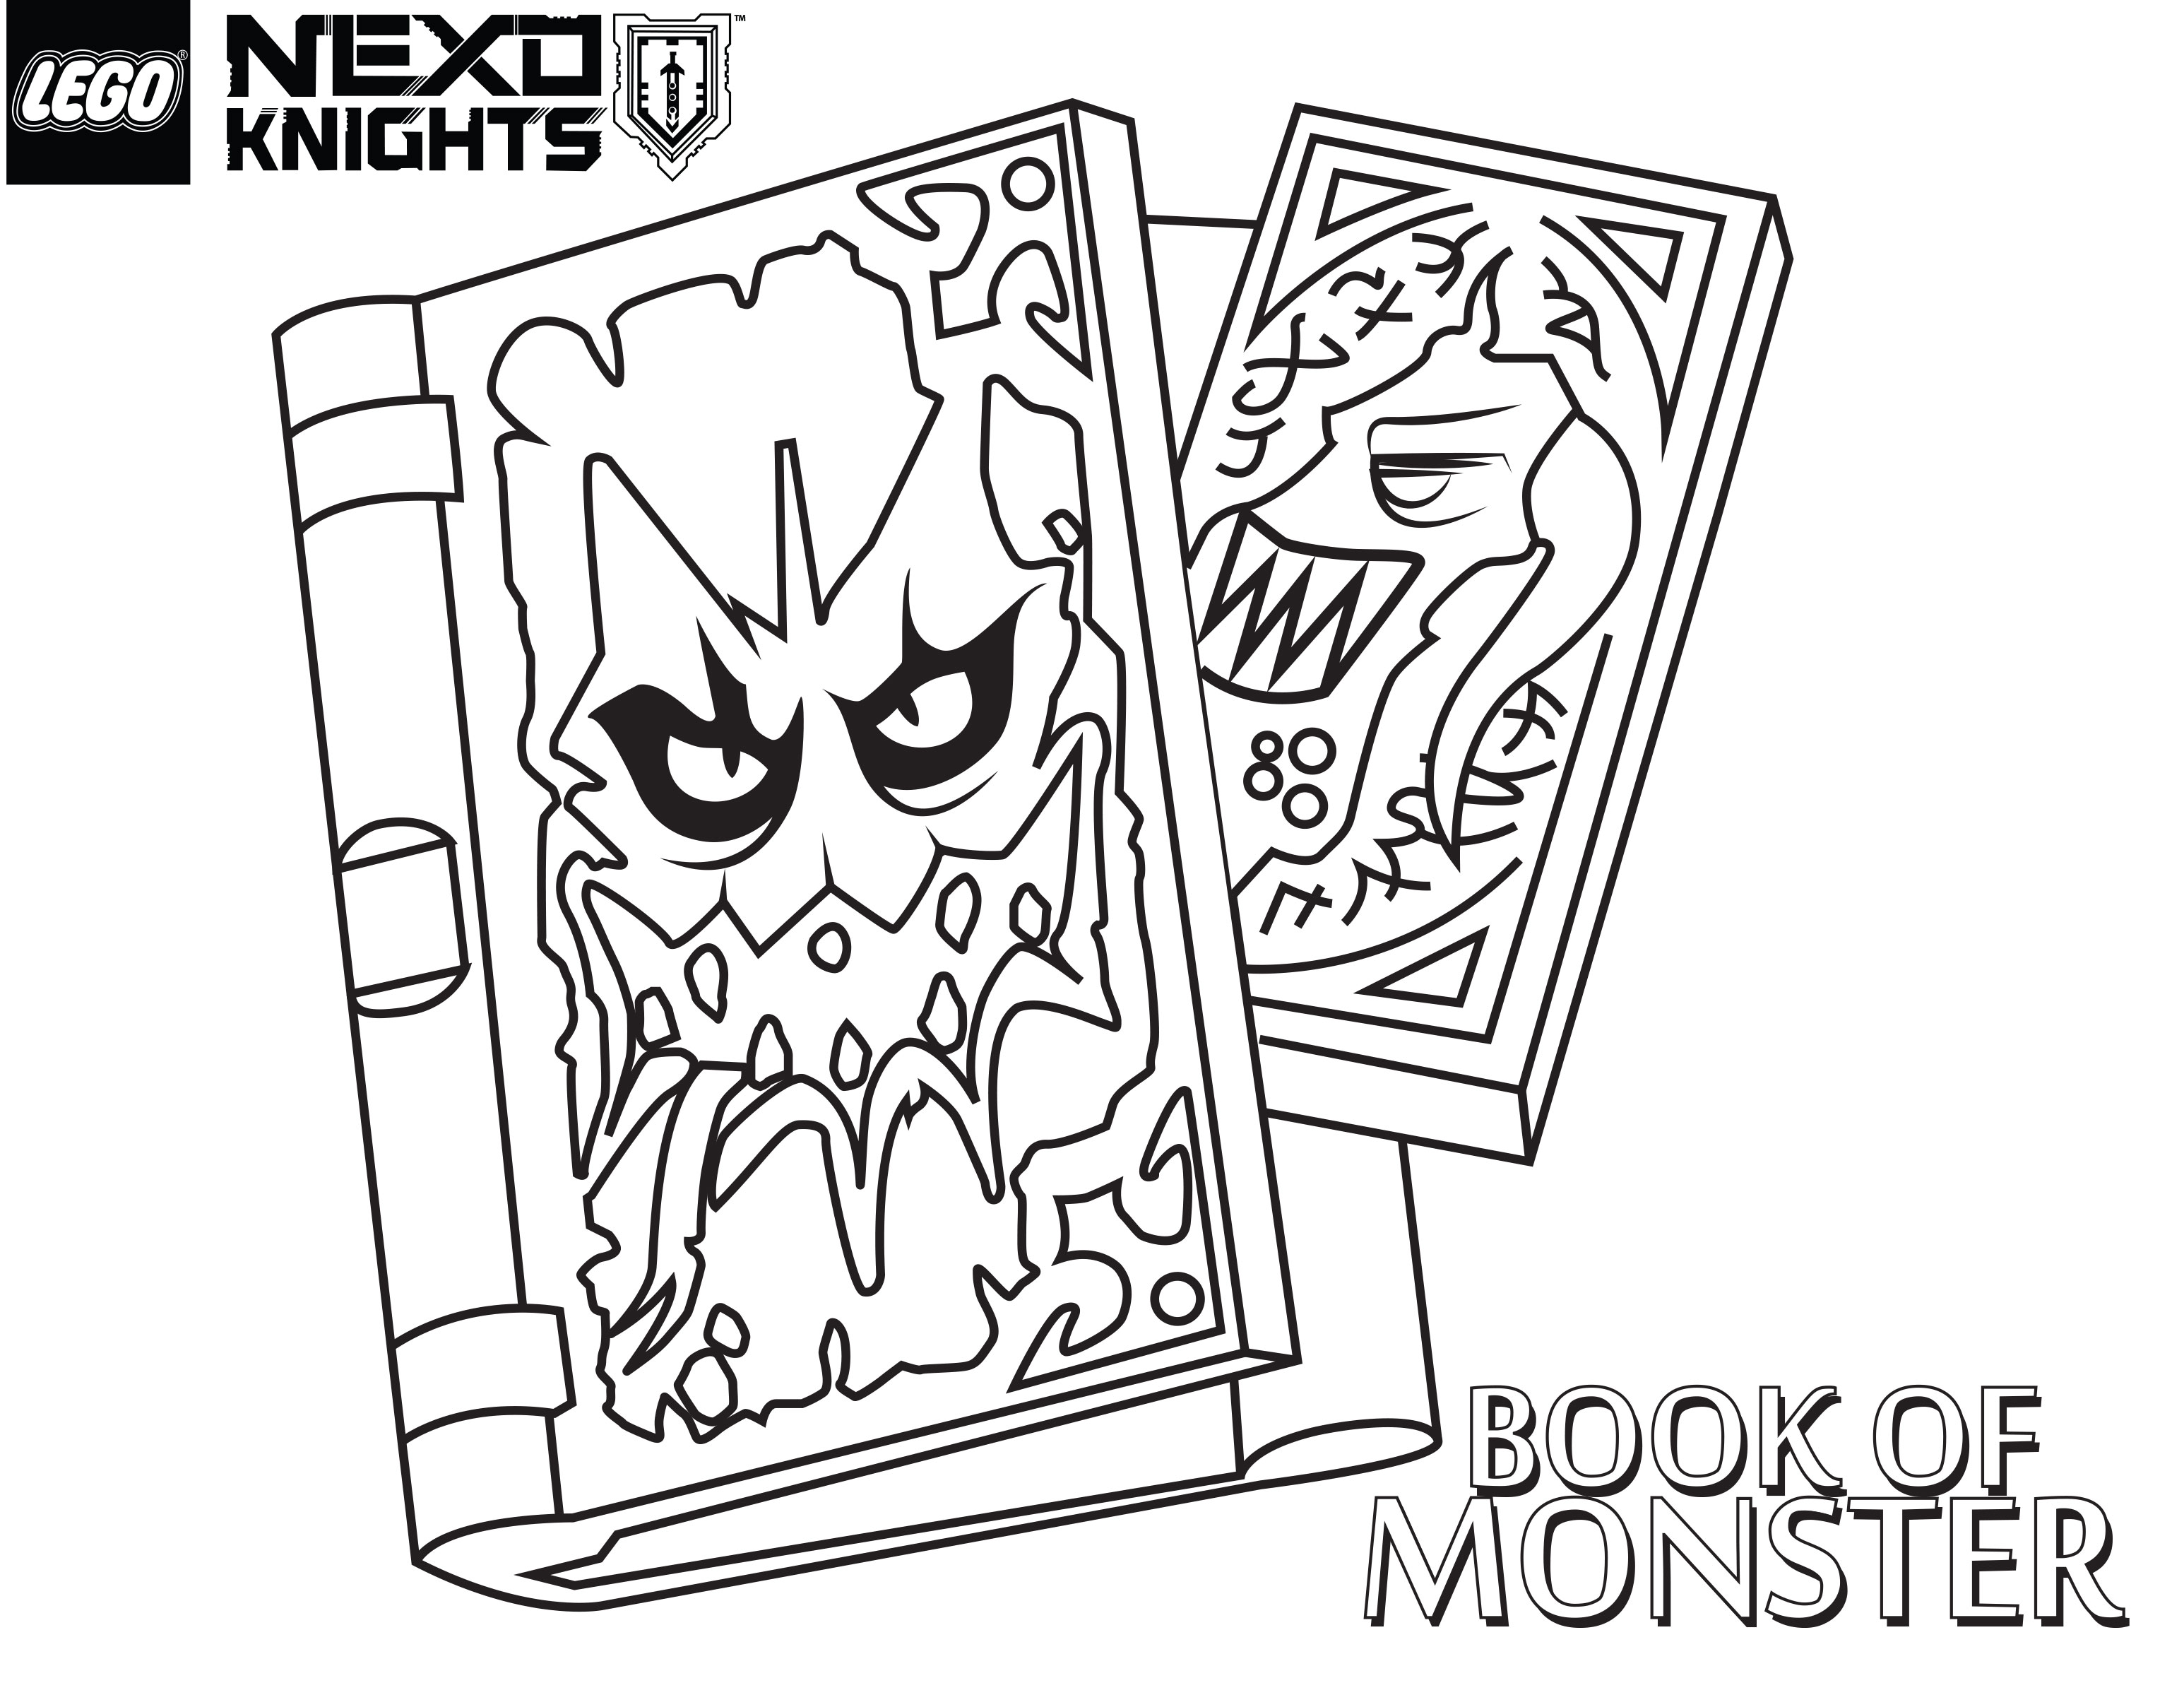 3092x2416 Lego Nexo Knights Coloring Pages Book Of Monsters